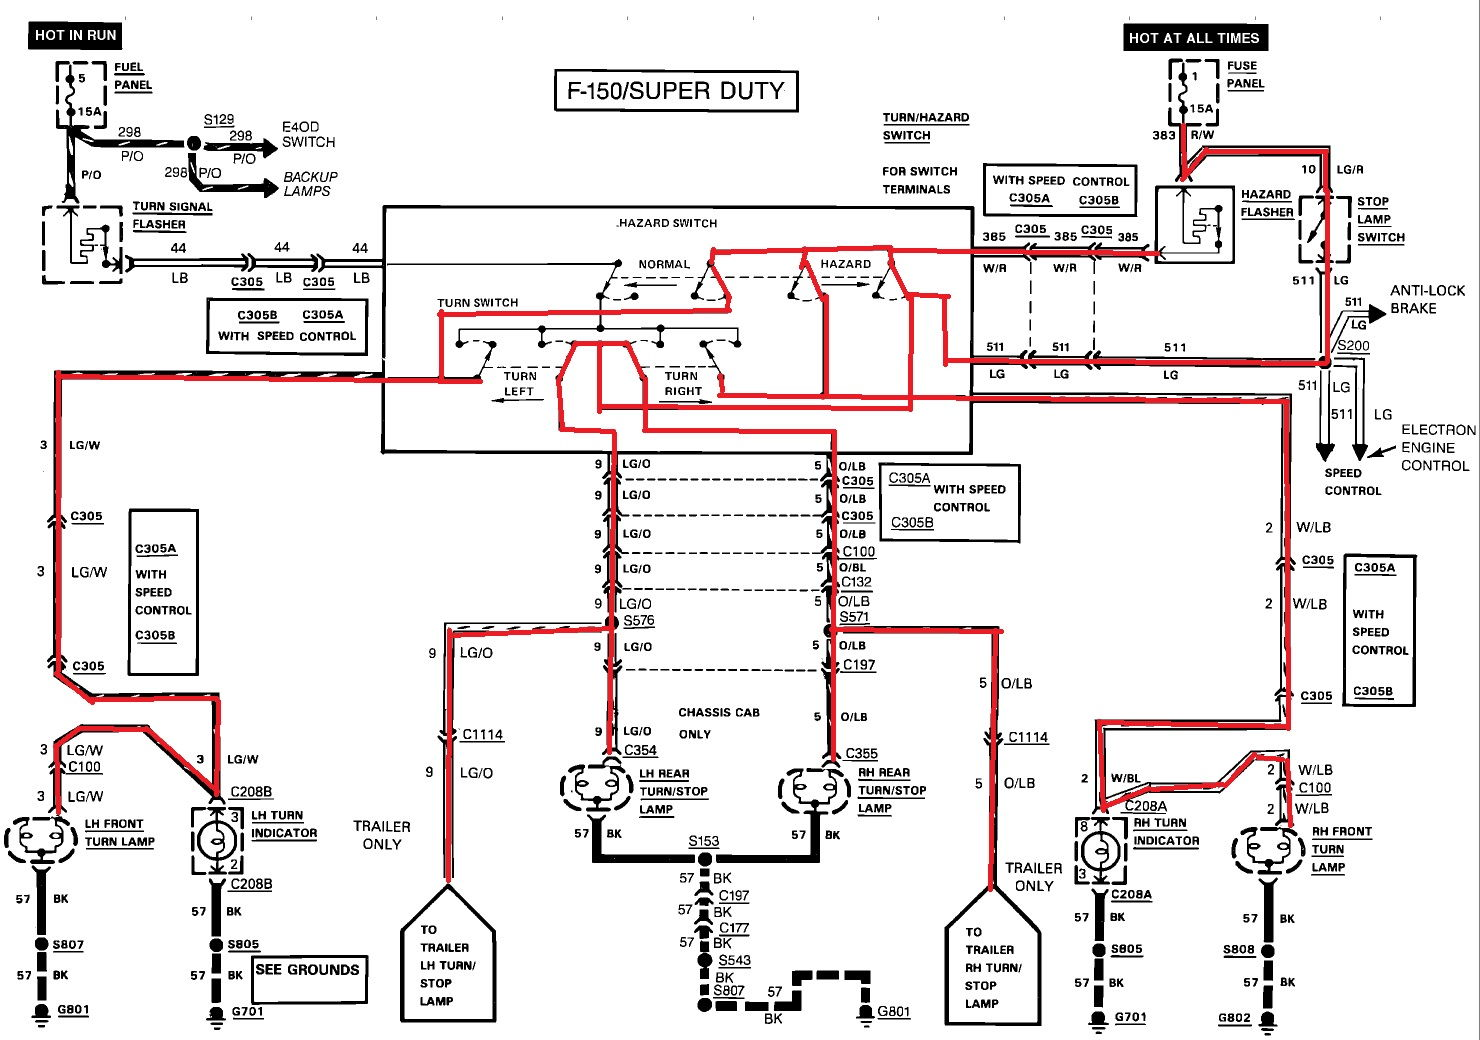 1990 ford f150 wiring diagram swimming pool filter system electrical gremlins c350 f350 truck